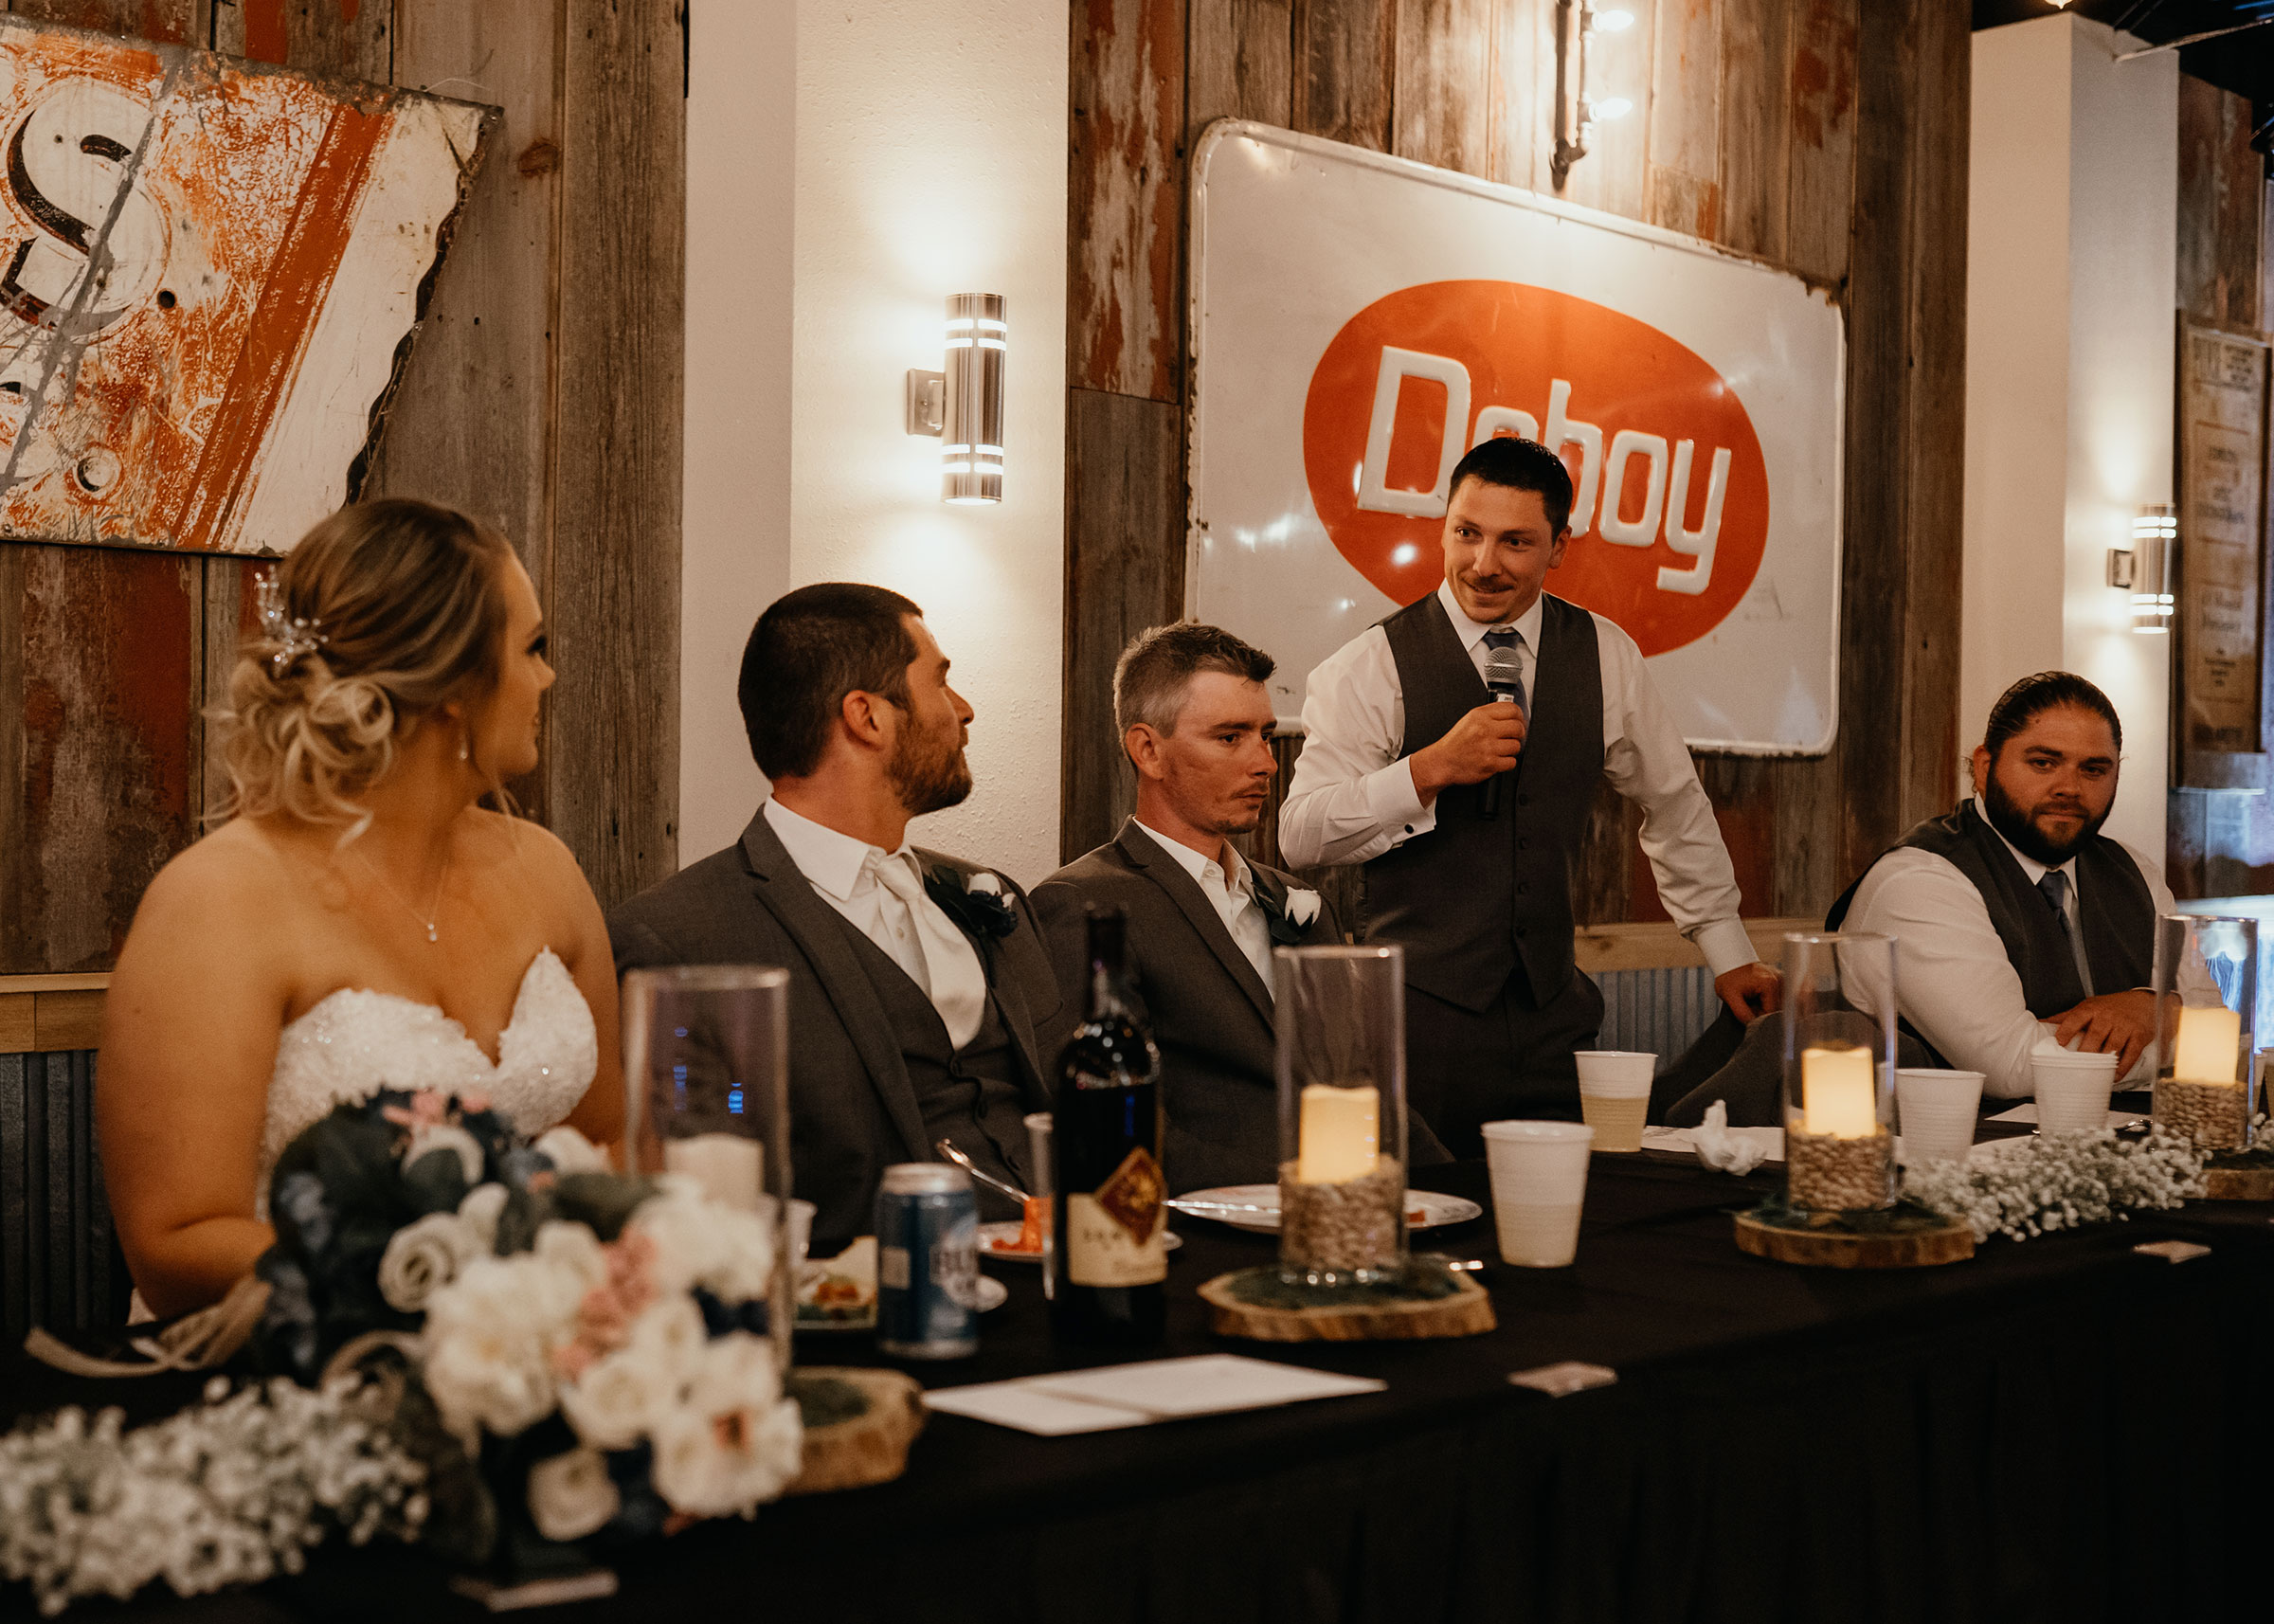 groomsmen-giving-speech-decades-event-center-building-desmoines-iowa-raelyn-ramey-photography..jpg